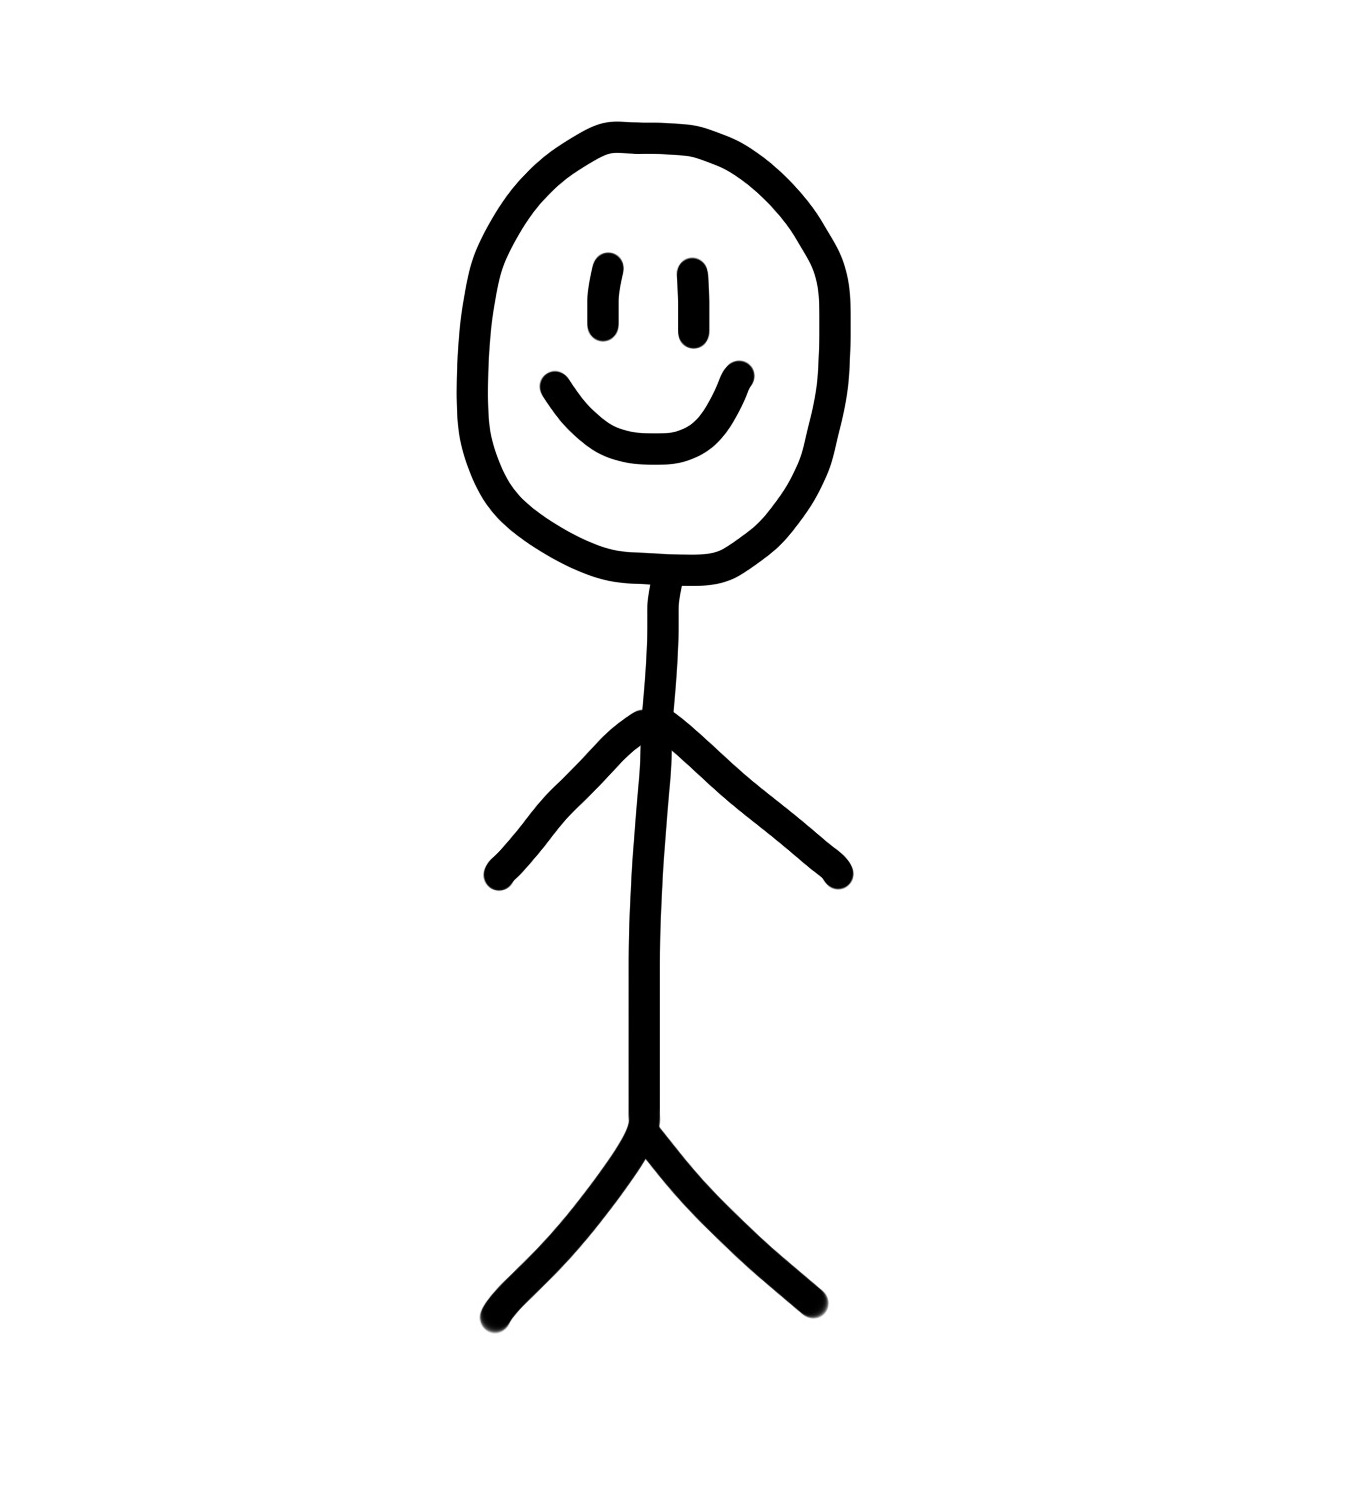 Stick figure clipart images svg library stock Men And Women Stick Figures | Free download best Men And ... svg library stock